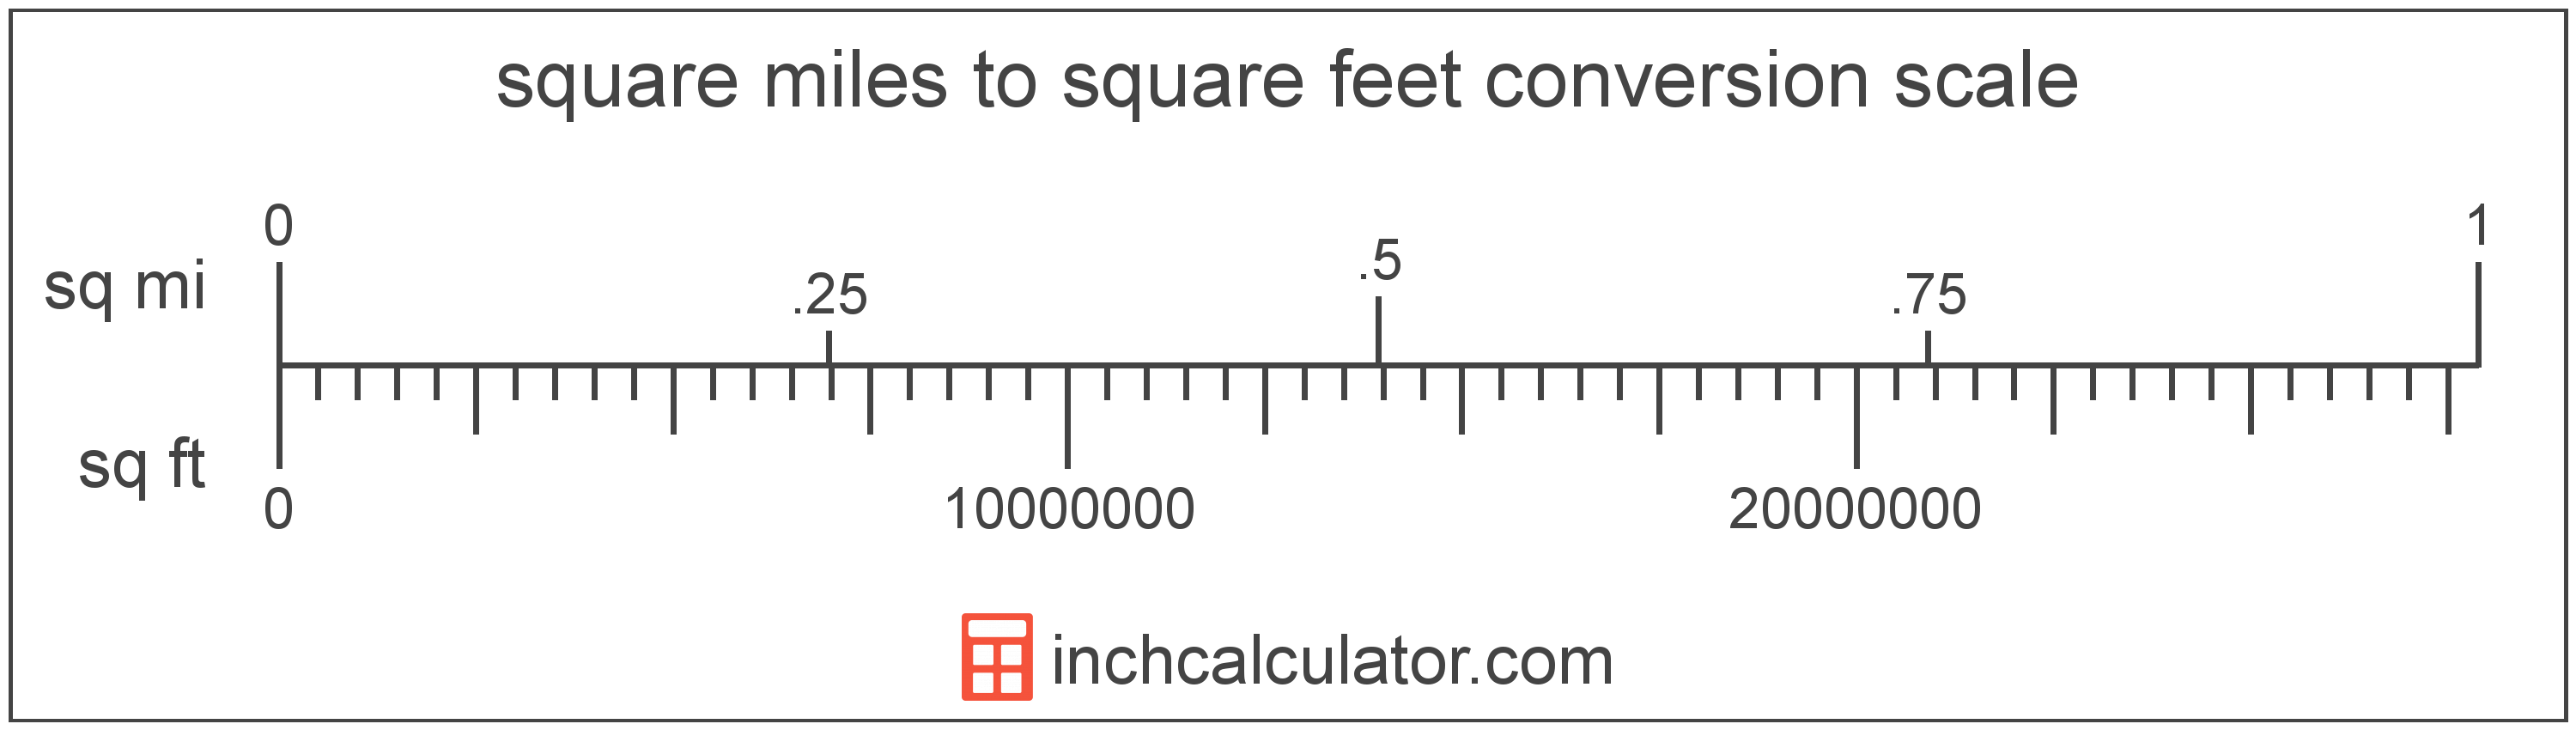 conversion scale showing square miles and equivalent square feet area values